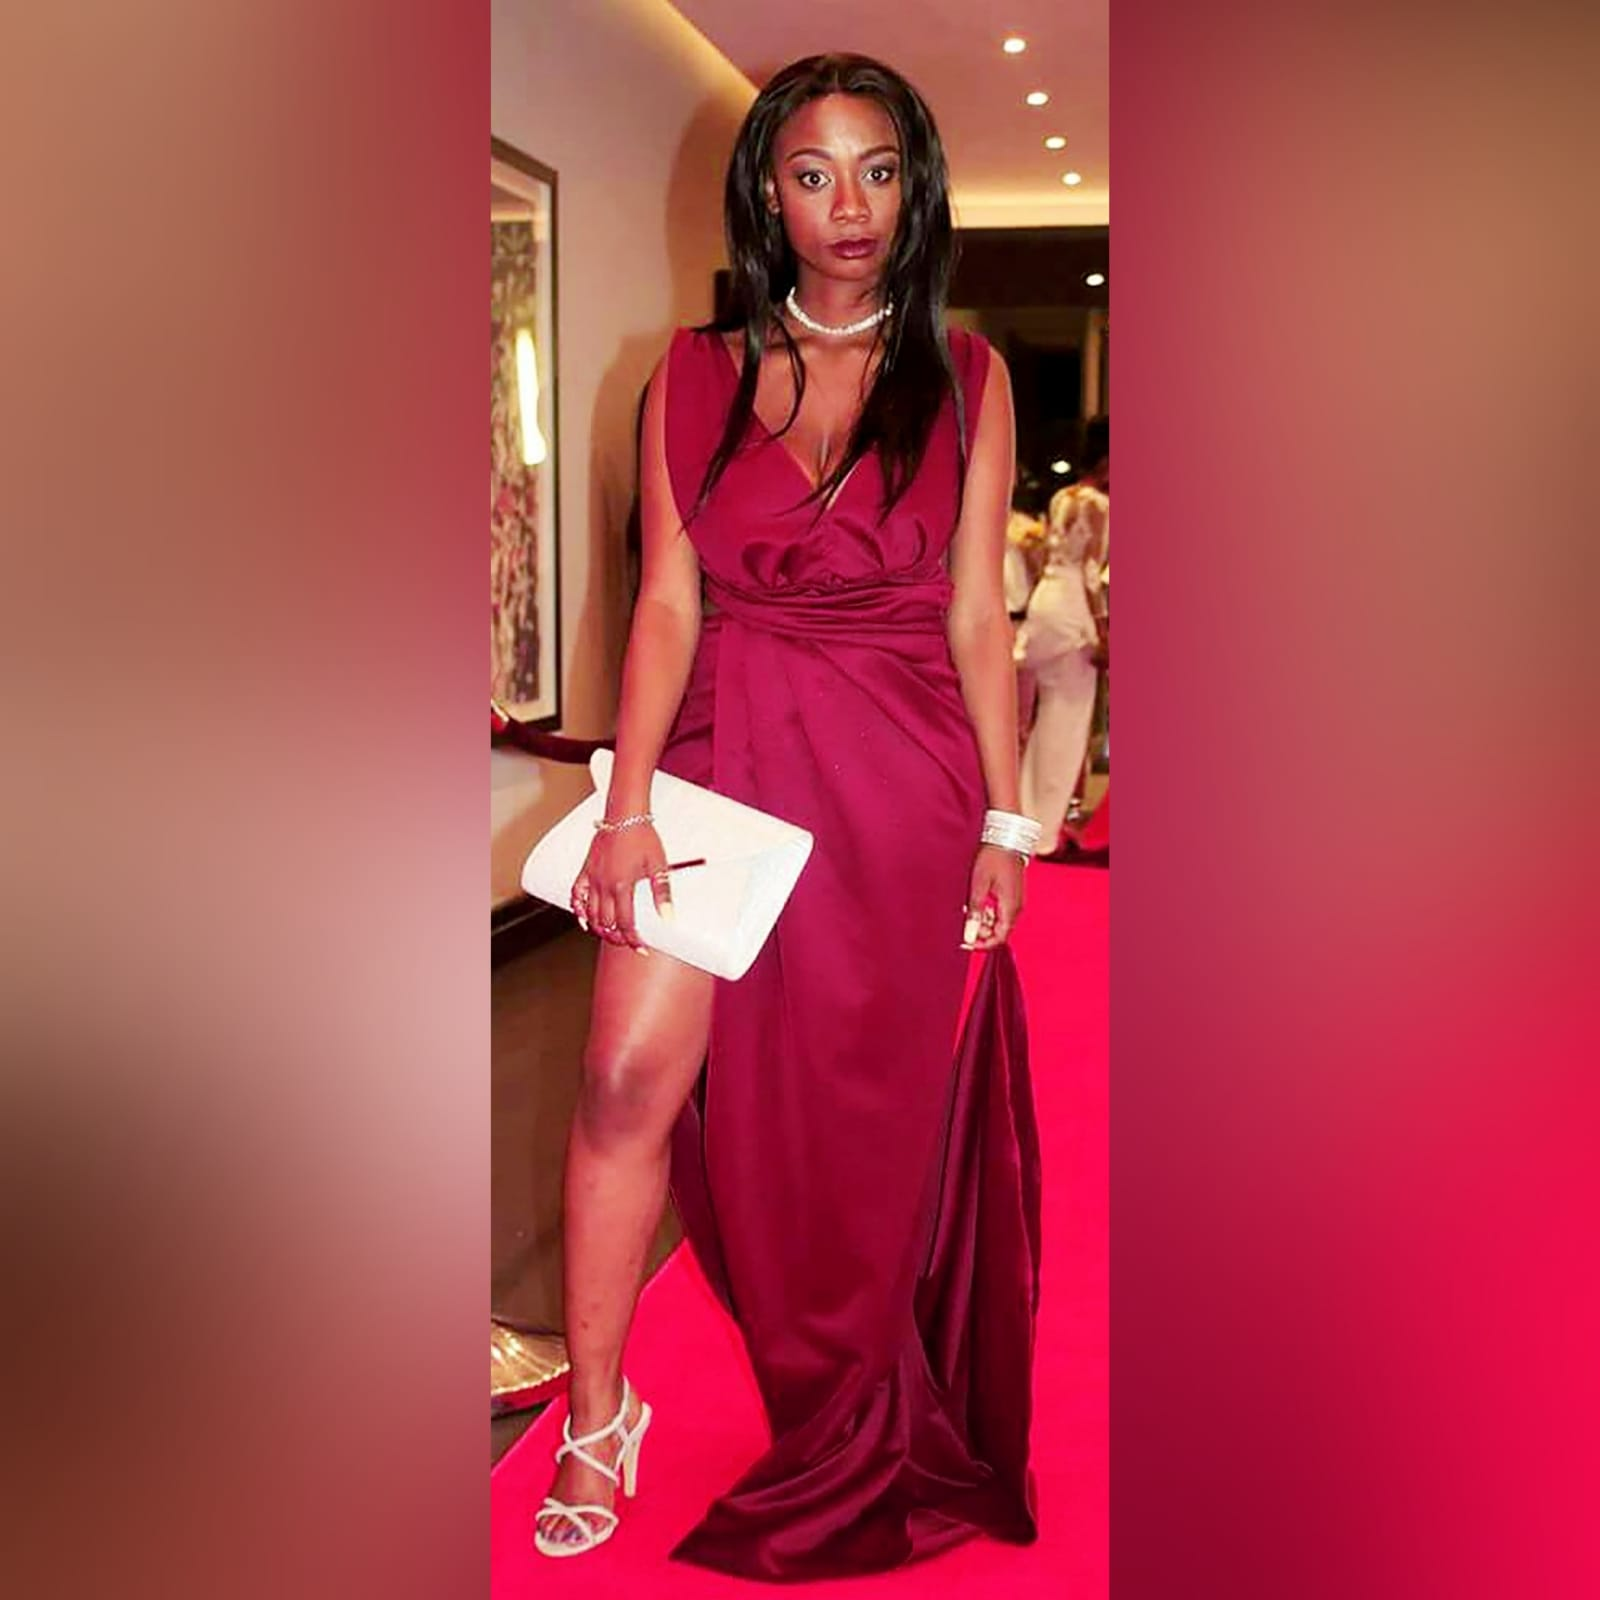 Burgundy draped long prom dress 2 burgundy draped long prom dress with a plunging neckline, sides open, crossed slit and a little train.